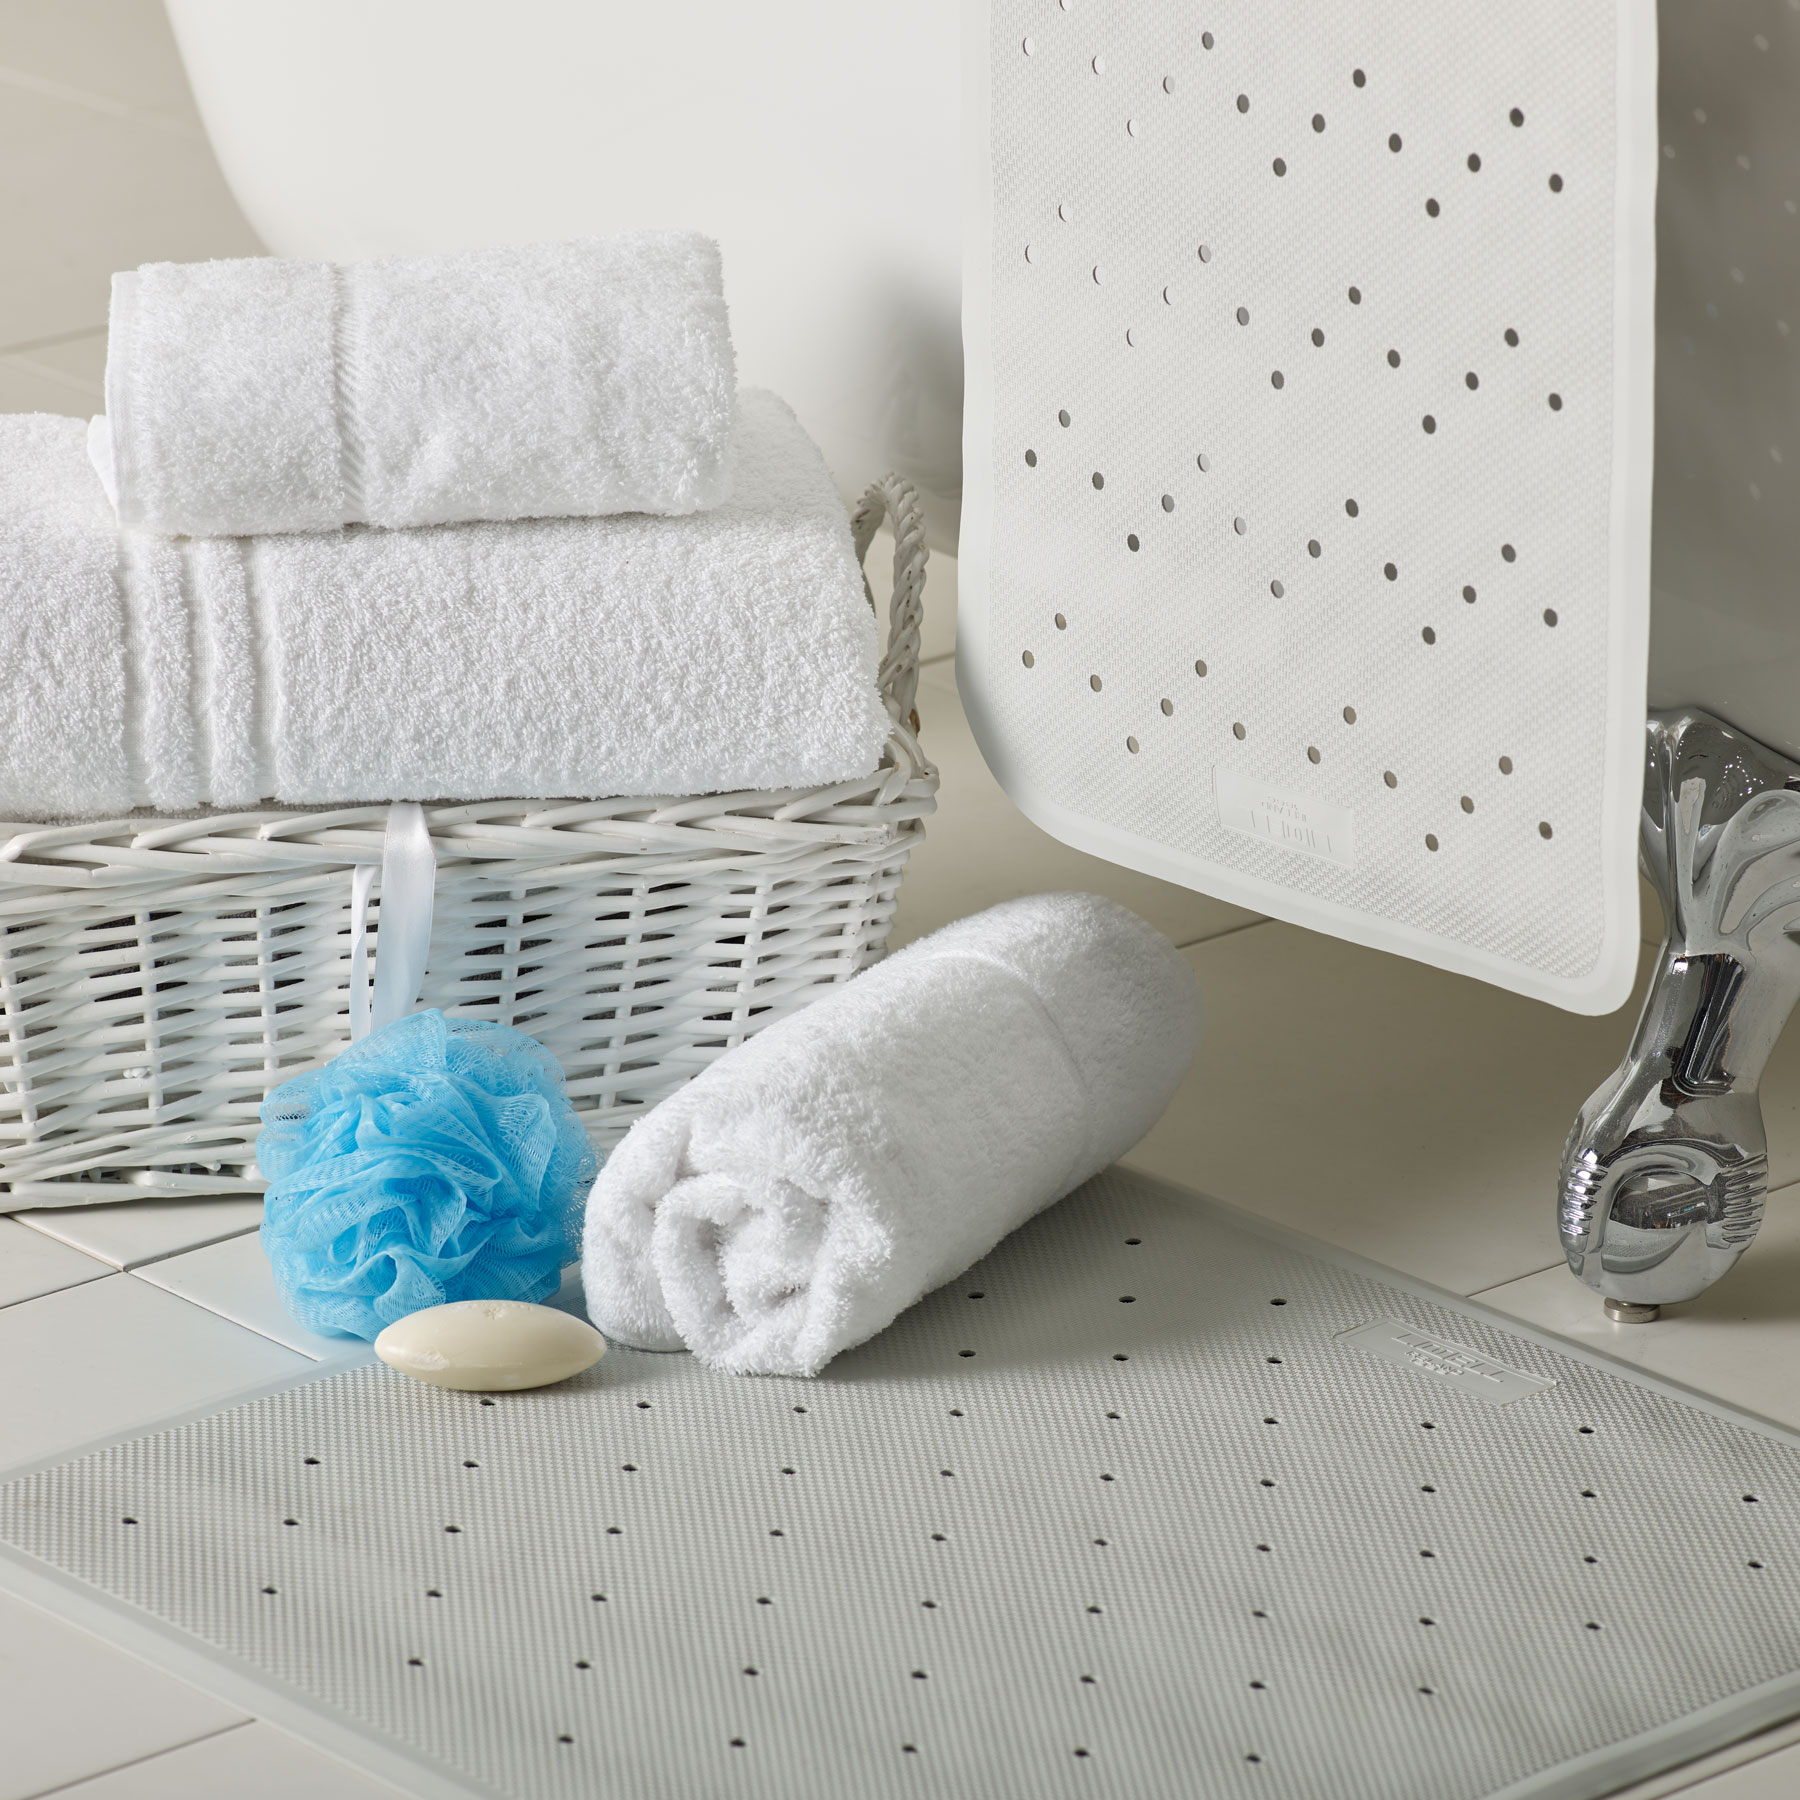 View Bathroom Accessories Collection Details